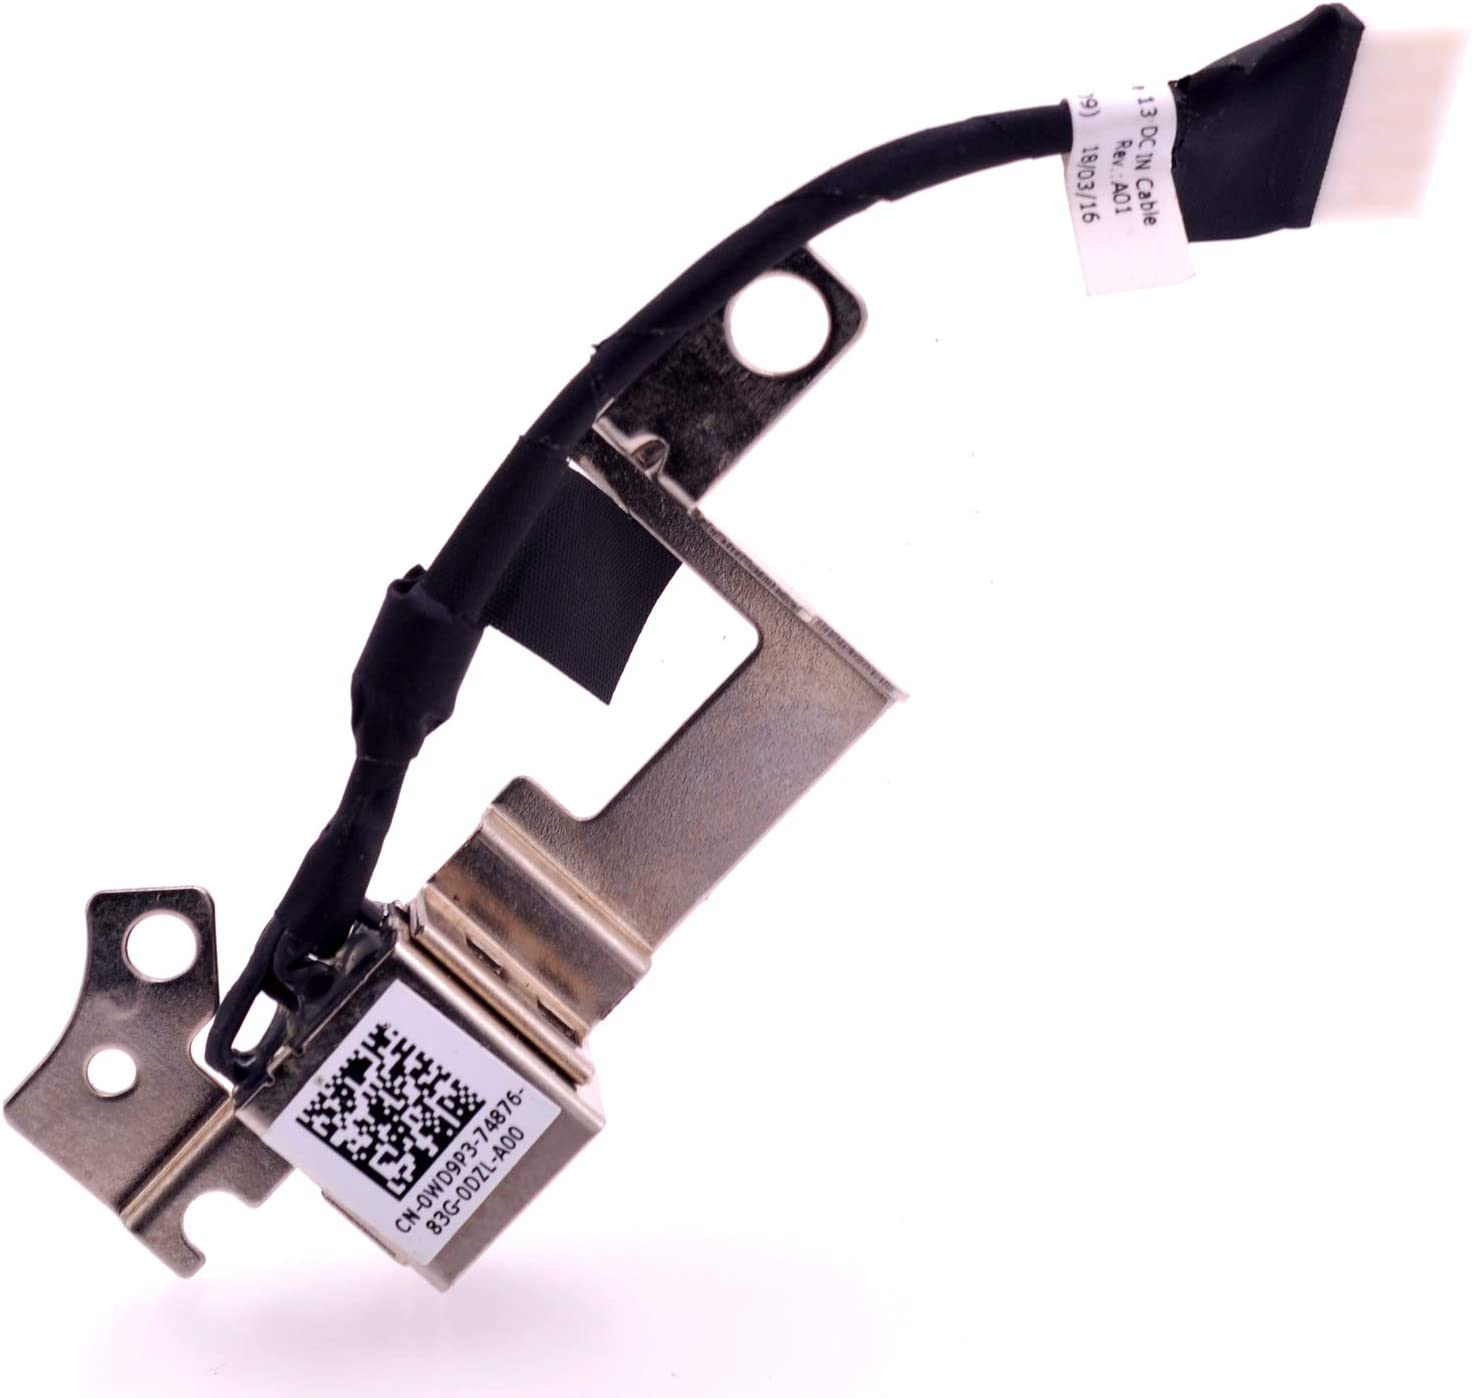 NEW DC Power Jack Harness Cable For Dell Latitude 13 3380 450.0AW08.0011 WD9P3